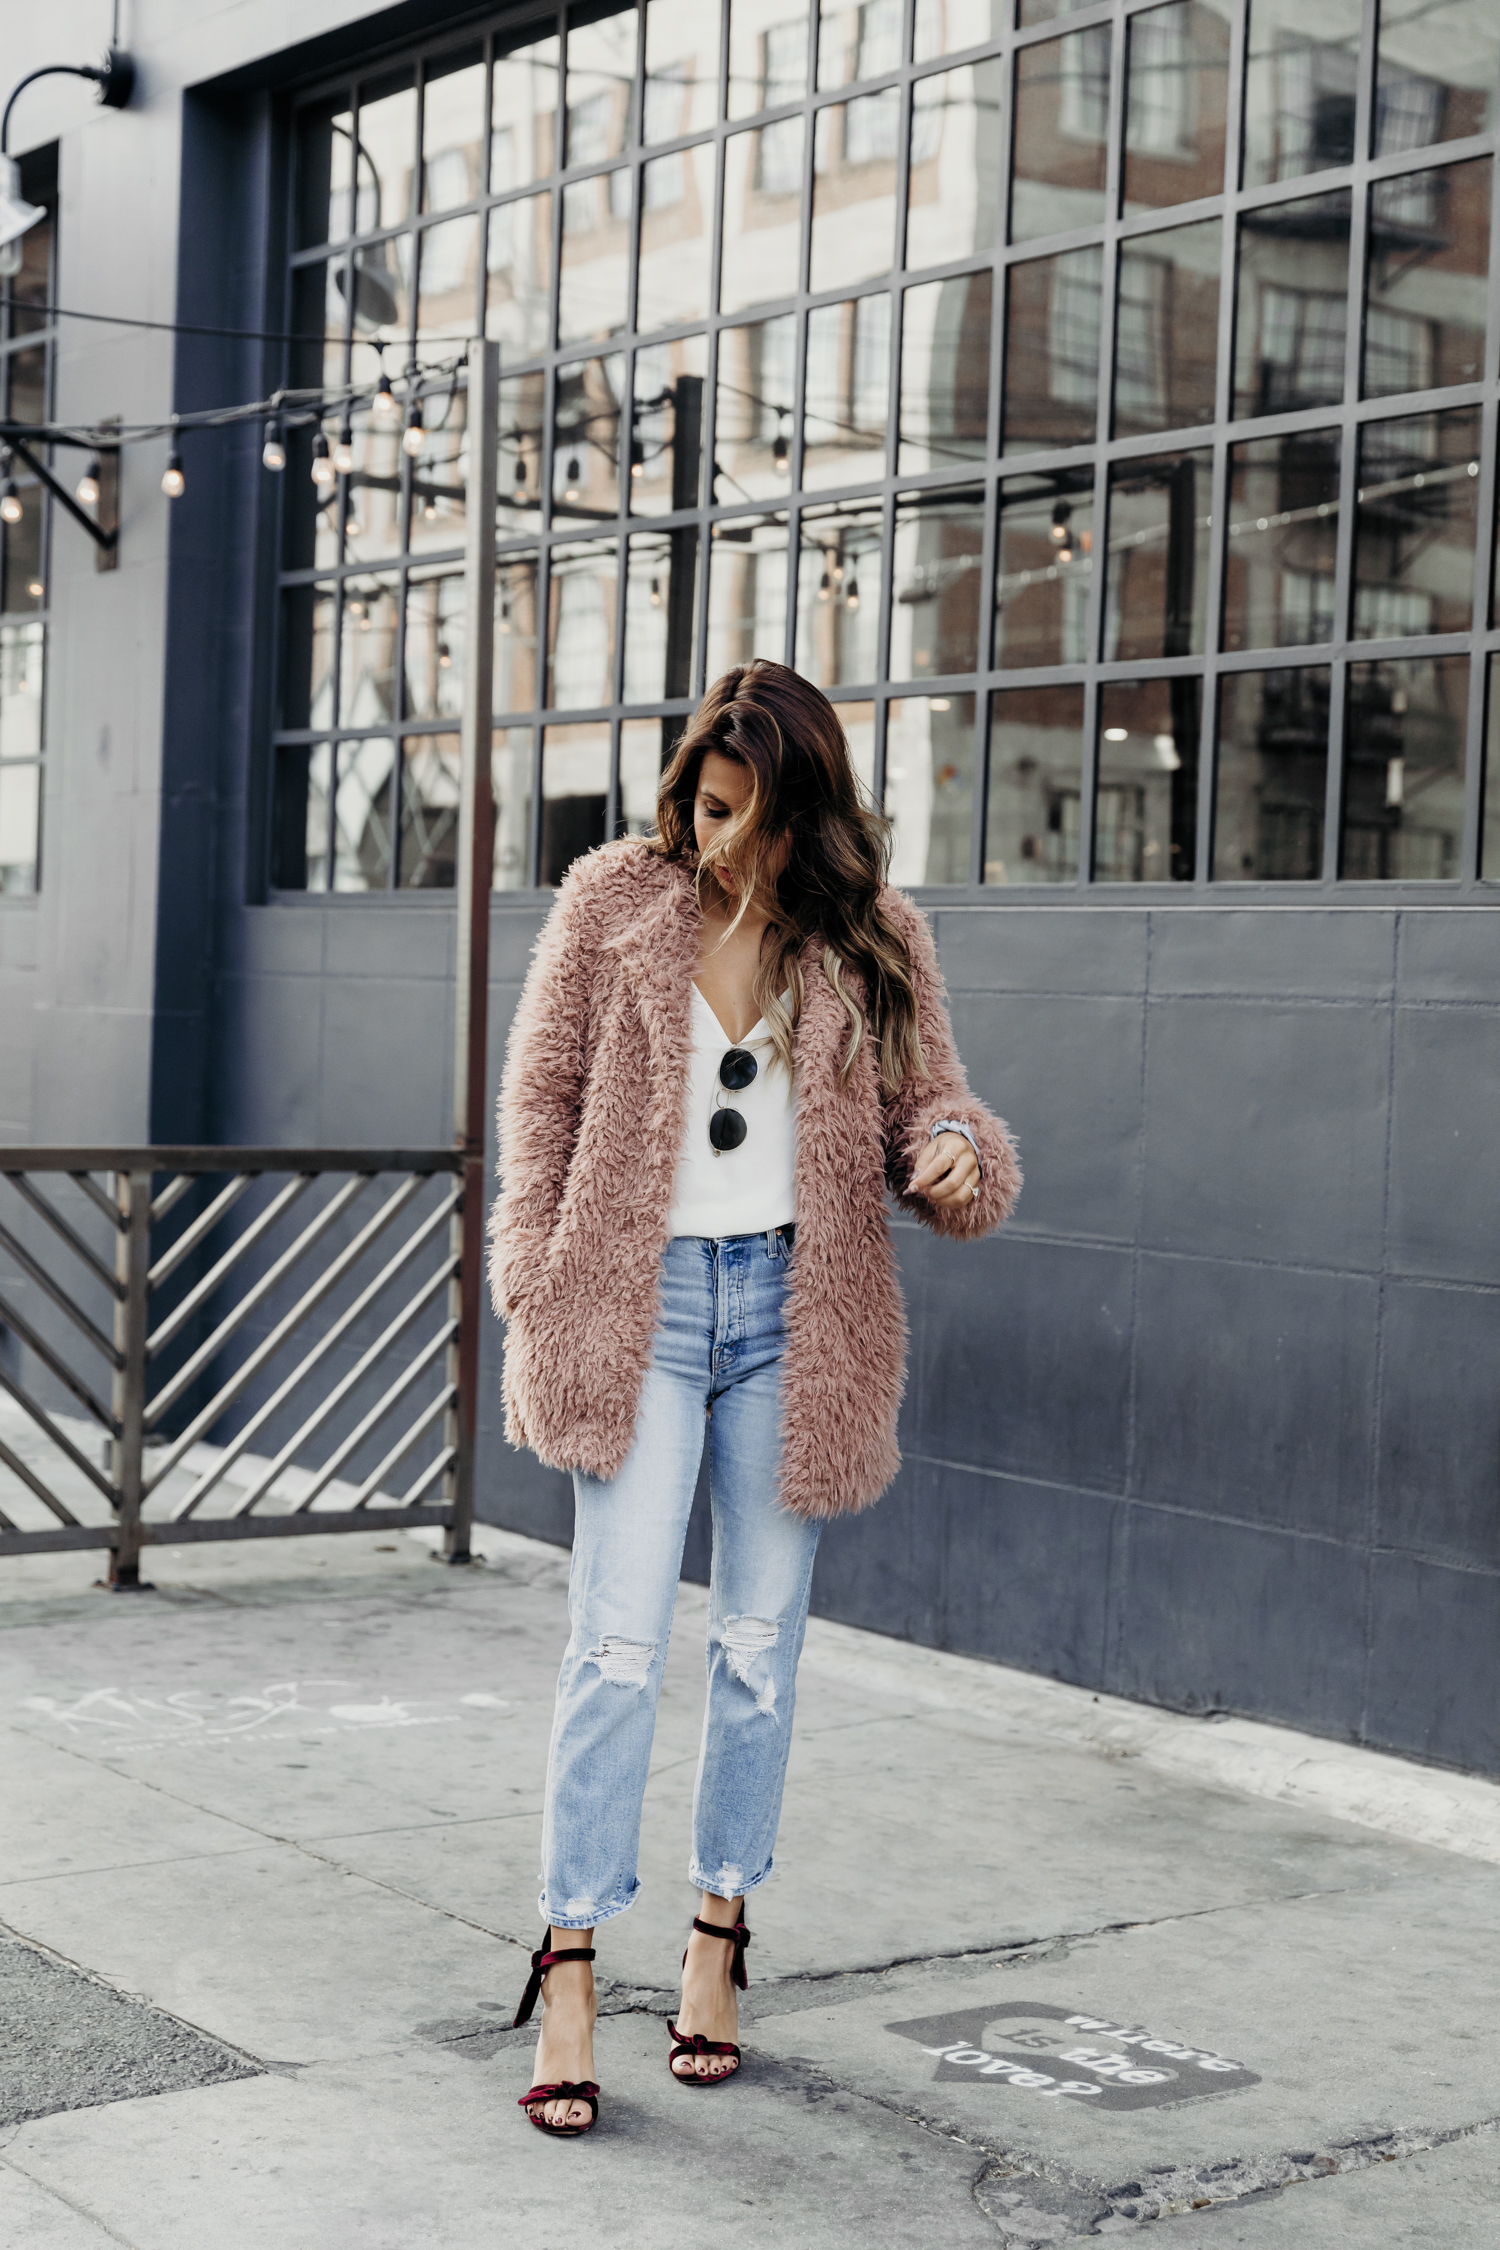 fuzzy jacket outfit, how to wear heels and jeans, friendsgiving outfit ideas